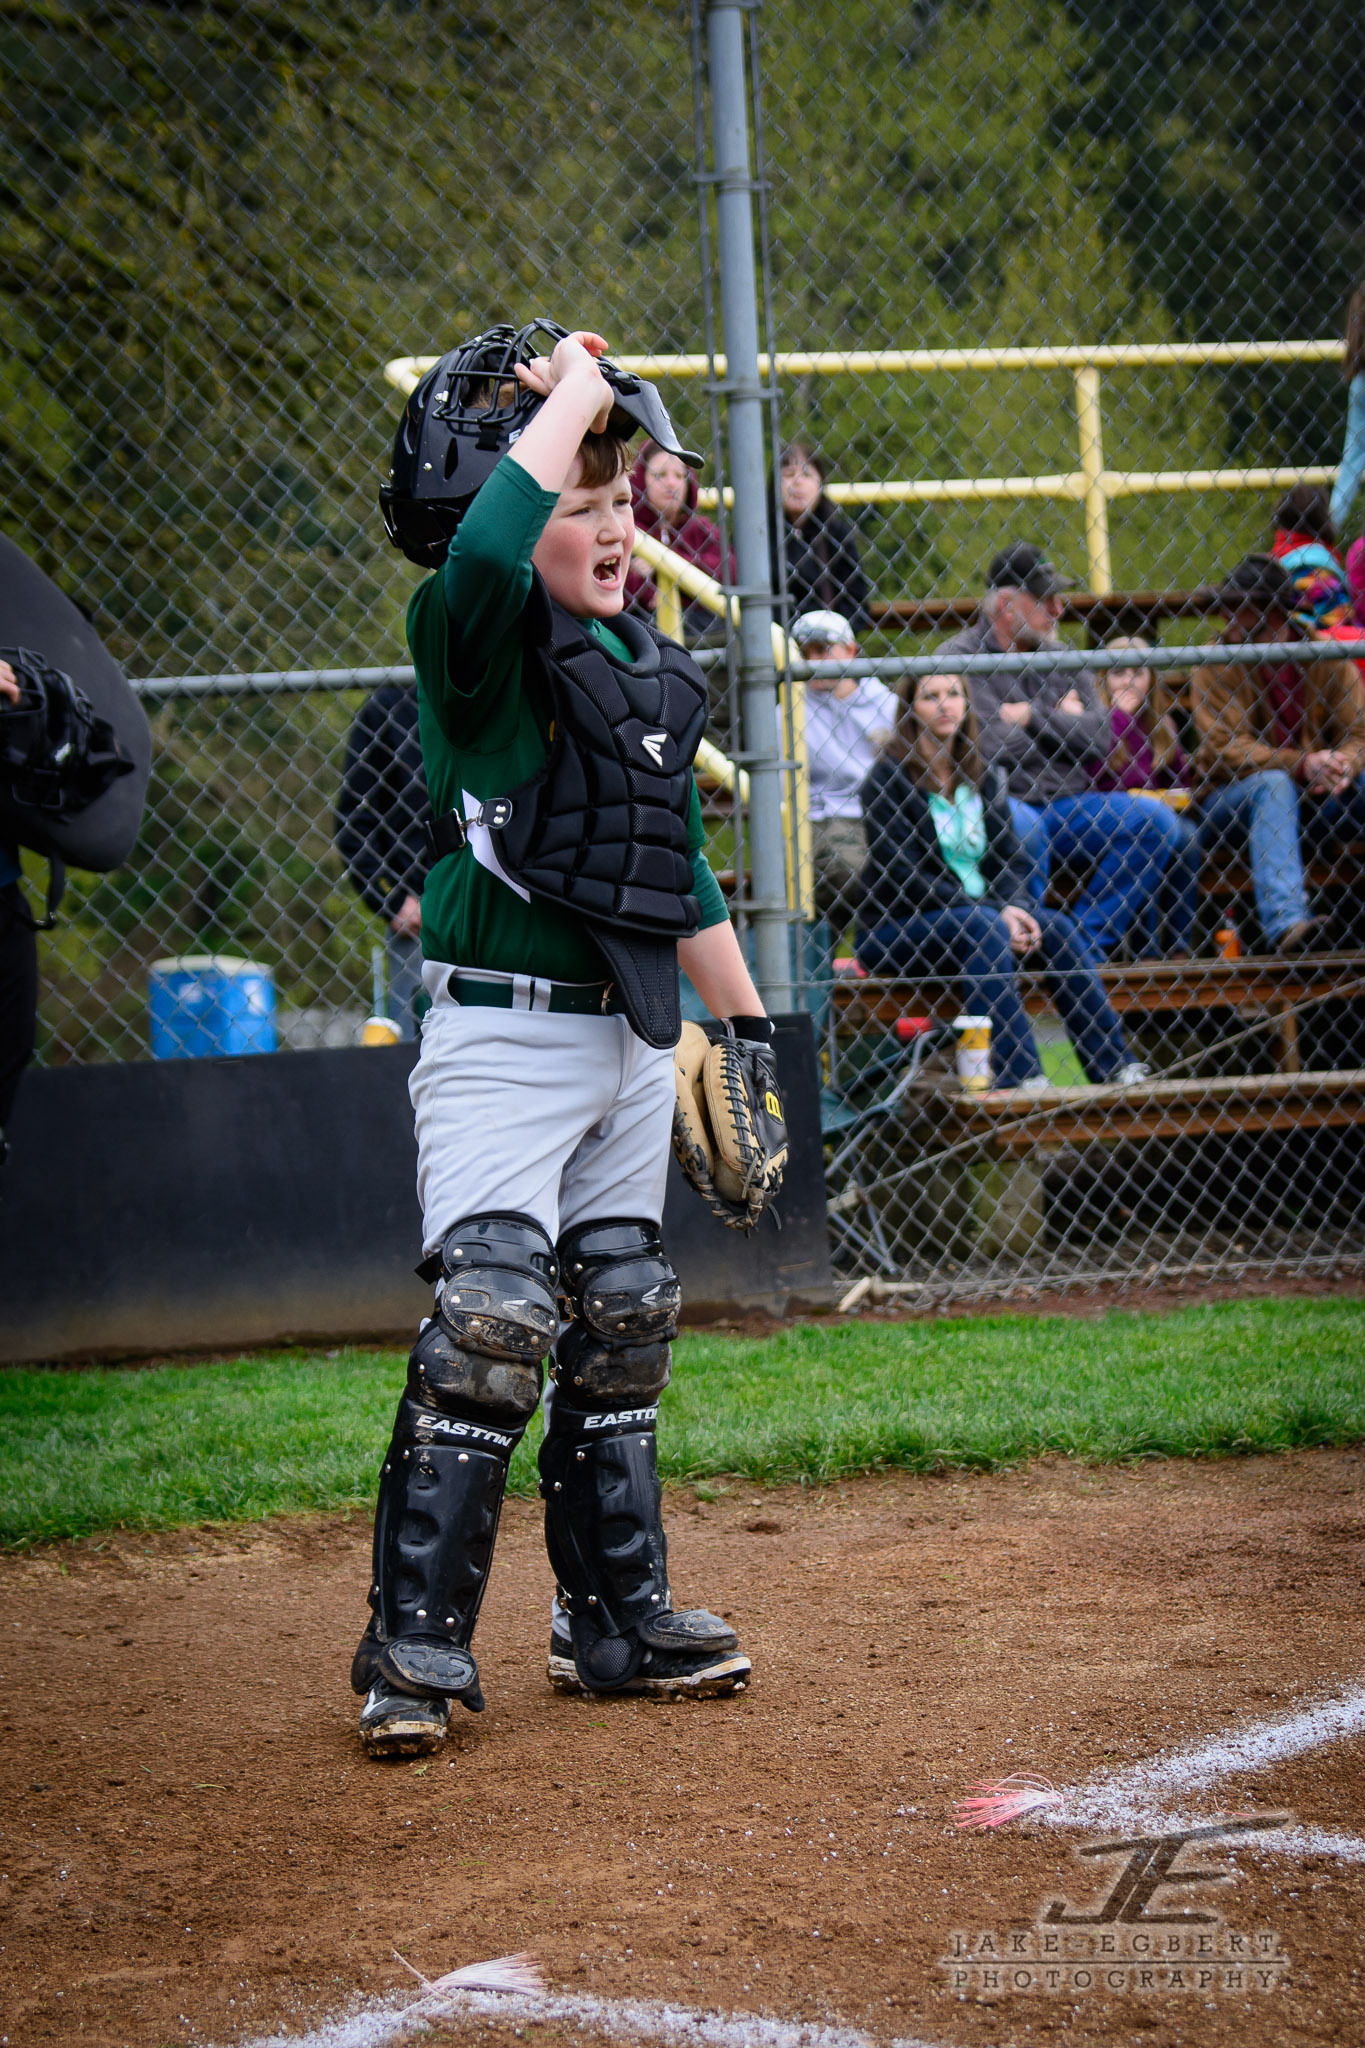 FB - 2014-04-05 - GreenSox - 19367.jpg